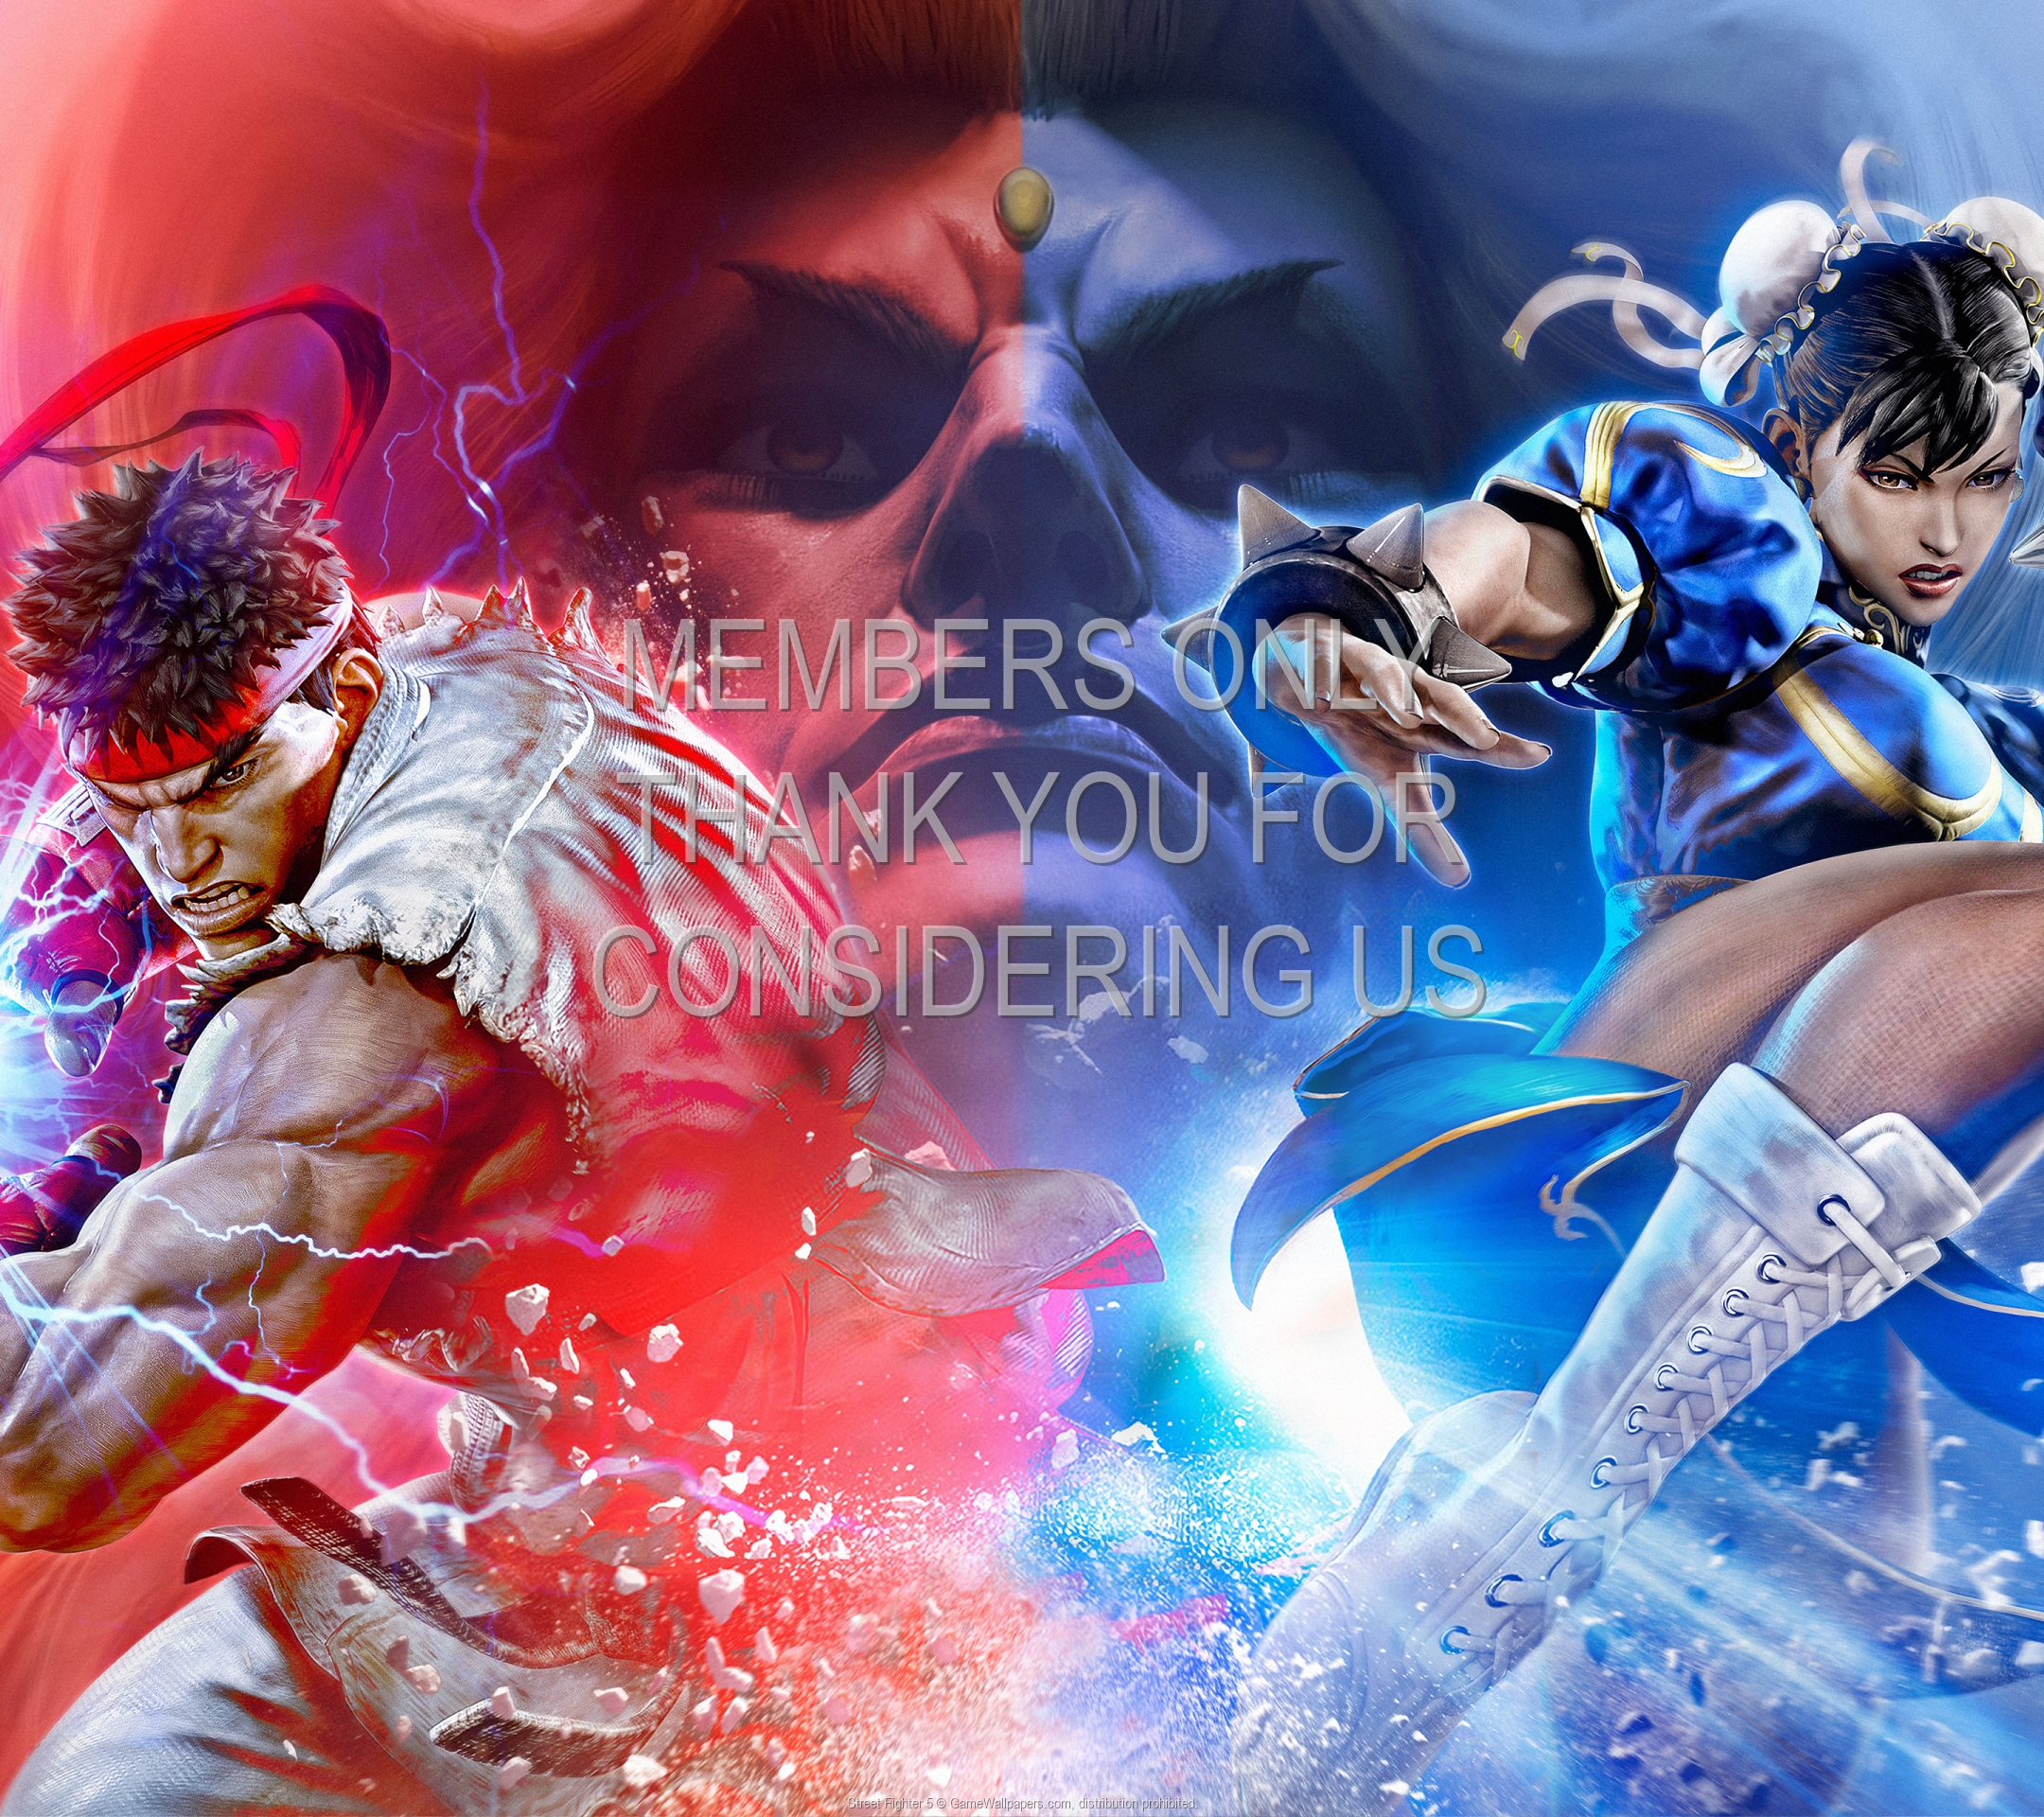 Street Fighter 5 1920x1080 Handy Hintergrundbild 08